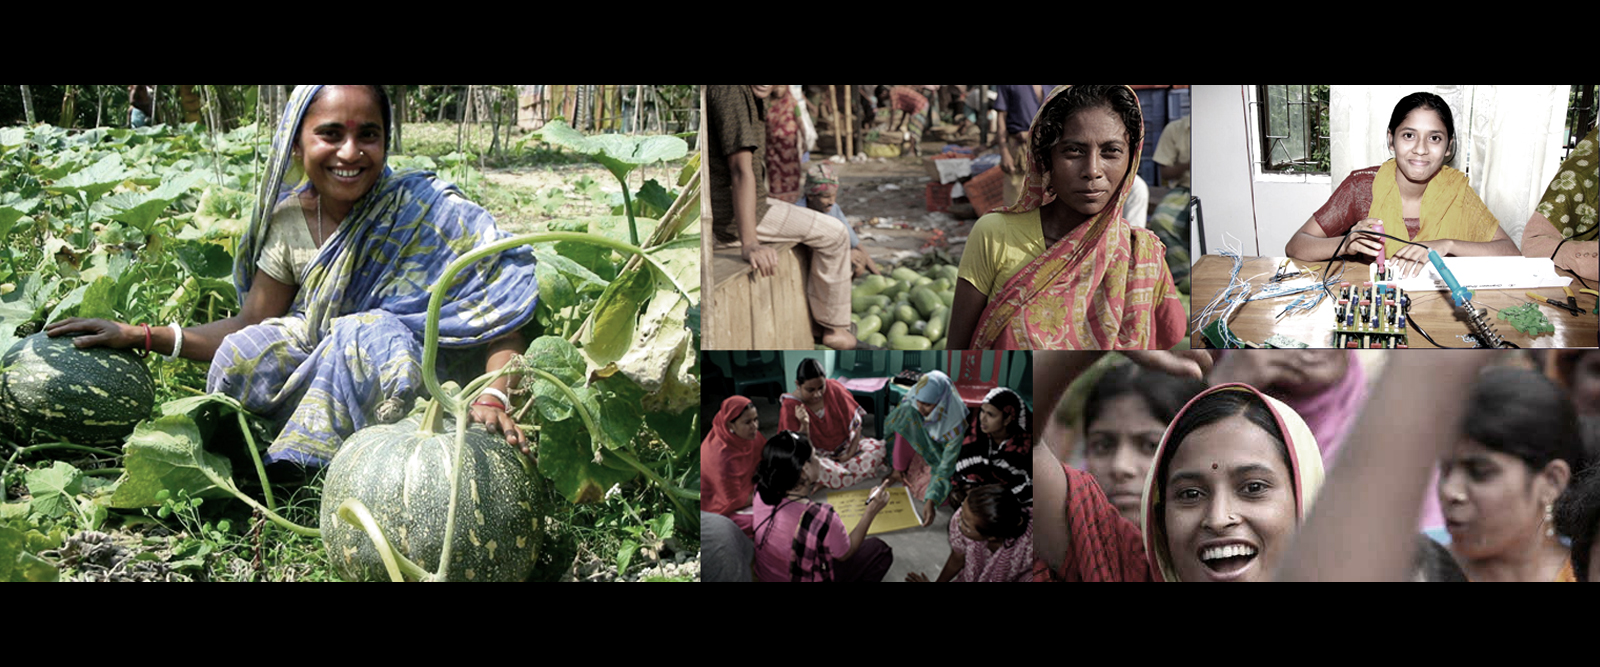 the women of bangladesh Micro-finance as a source of economic empowerment of rural women in rural women in bangladesh: as a source of economic empowerment of rural.